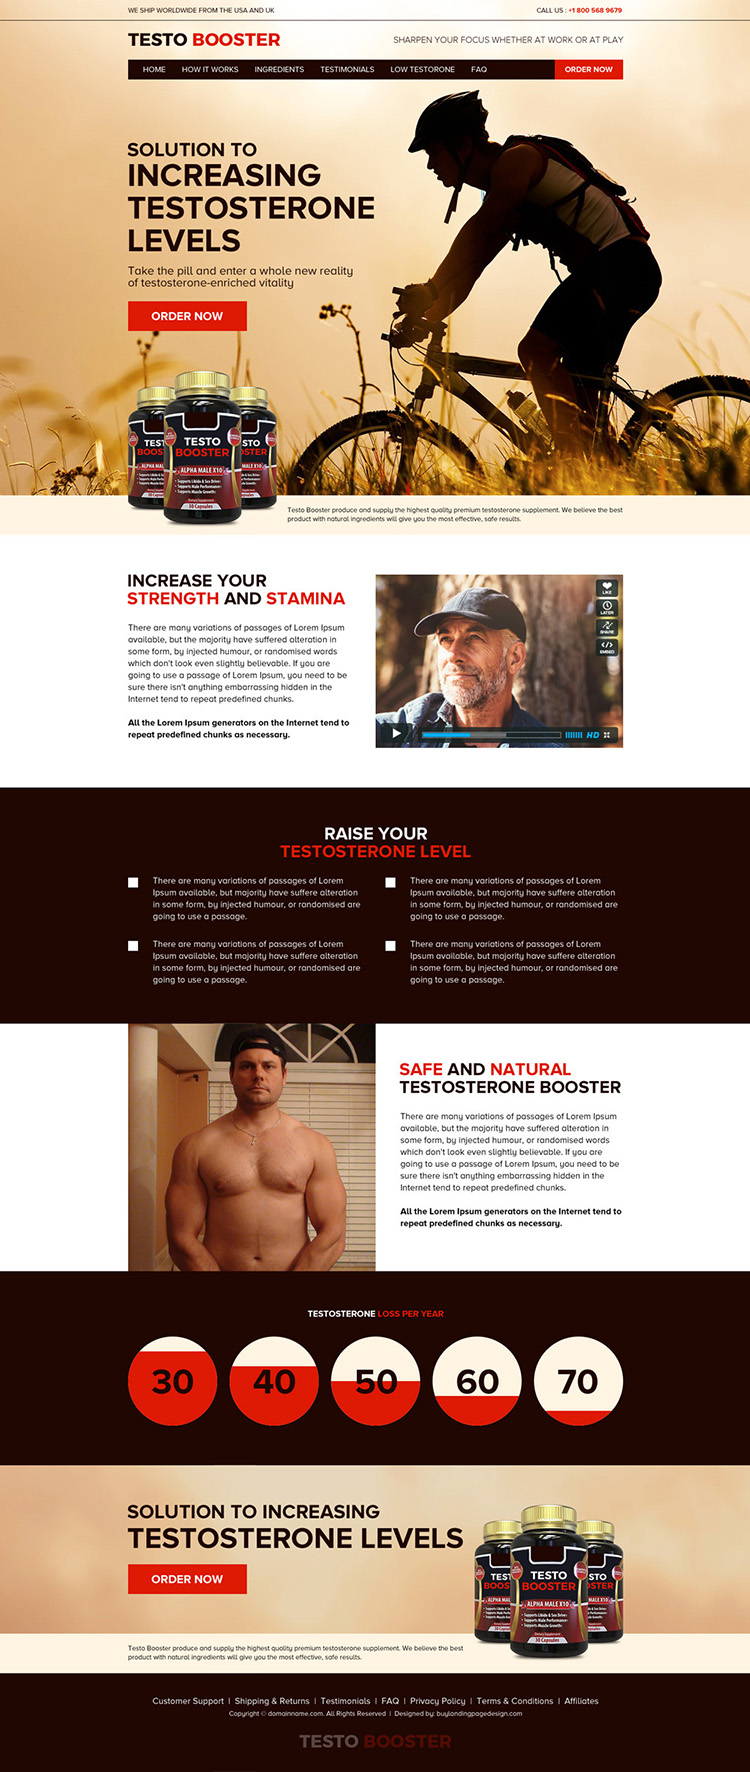 low testosterone pills selling responsive website design